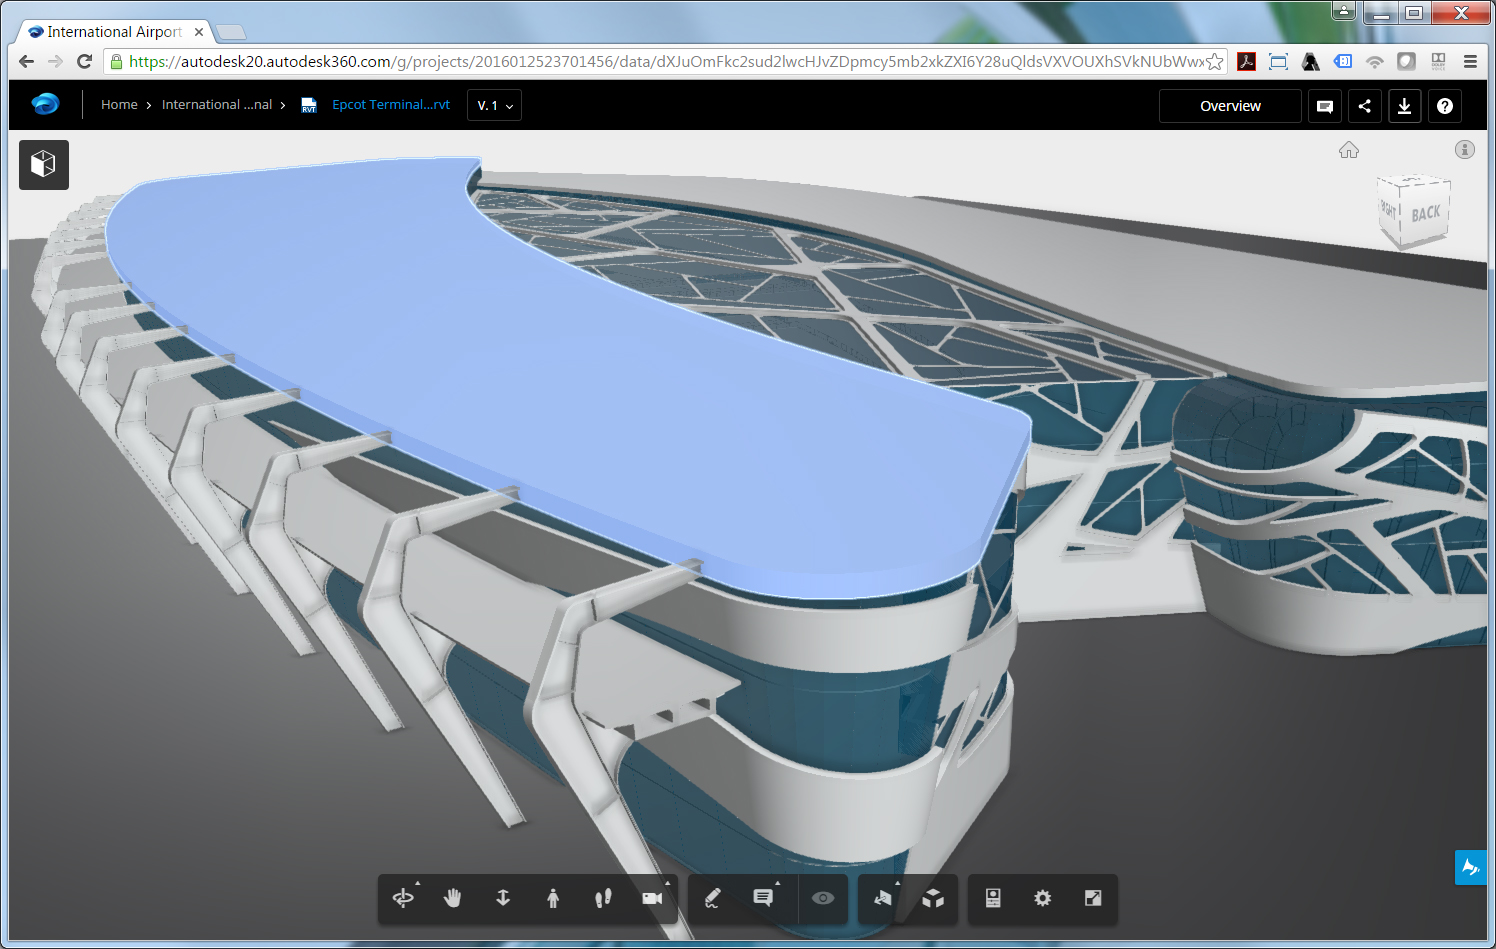 A360 Airport Model